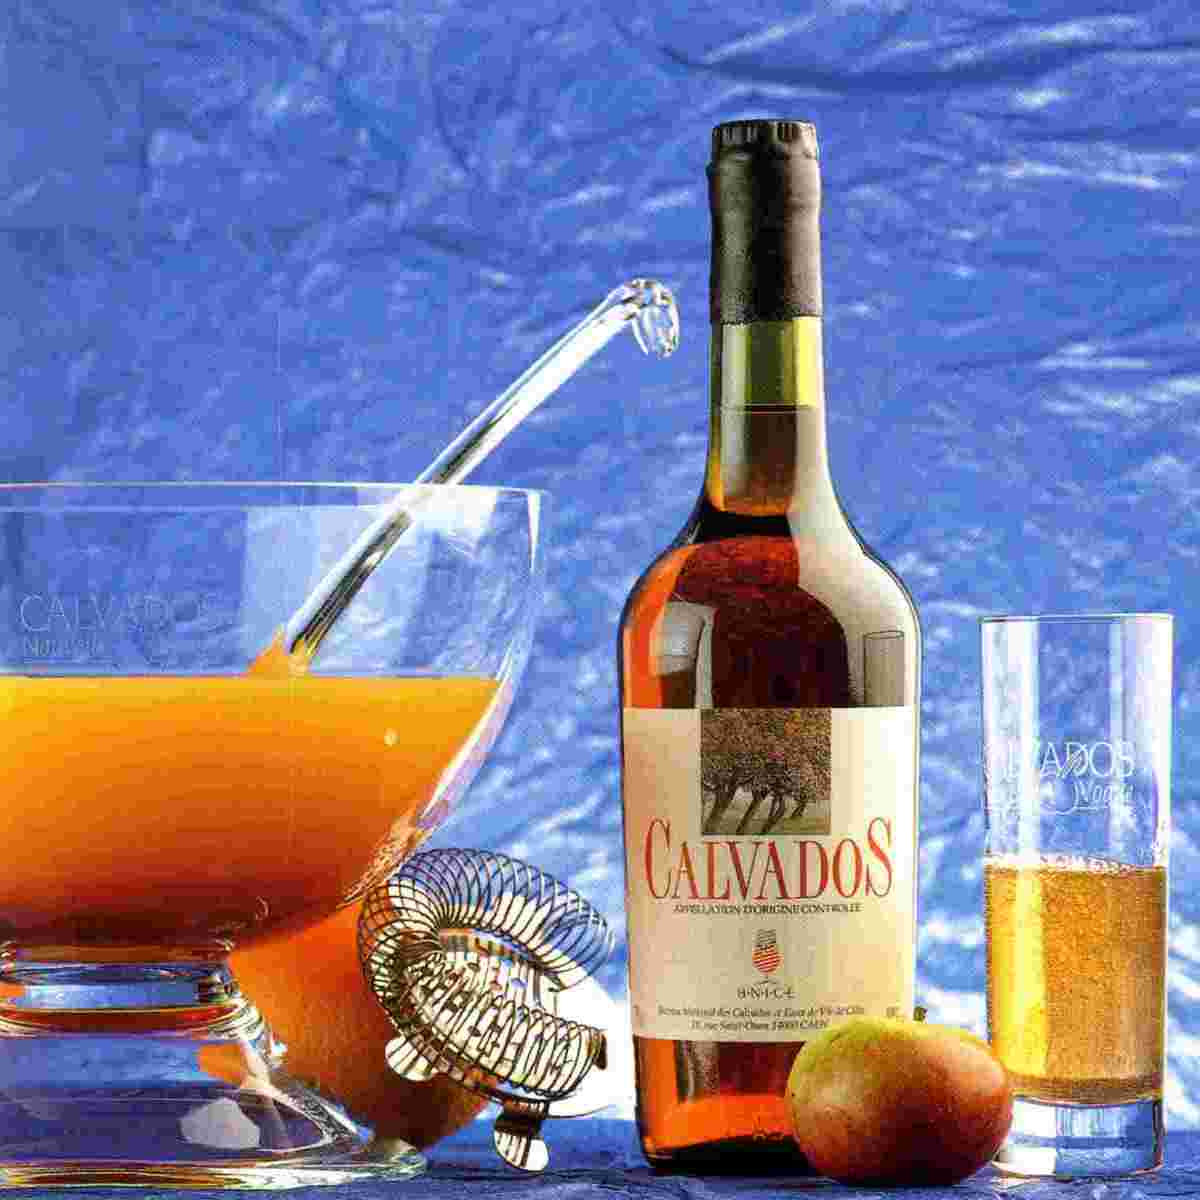 Calvados, a Brandy from Normandy, France